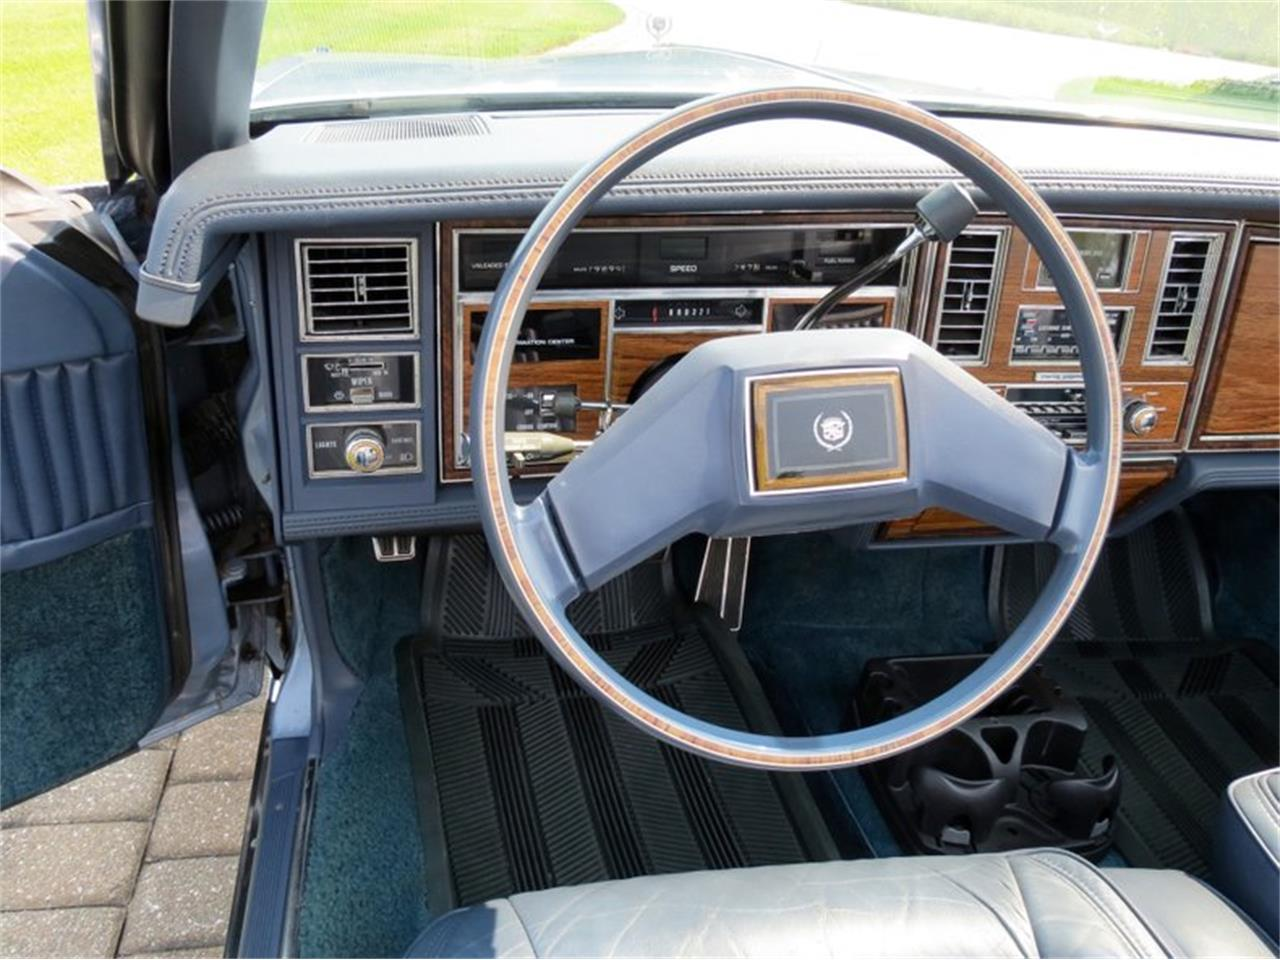 1983 Cadillac Seville for sale in Dayton, OH – photo 20